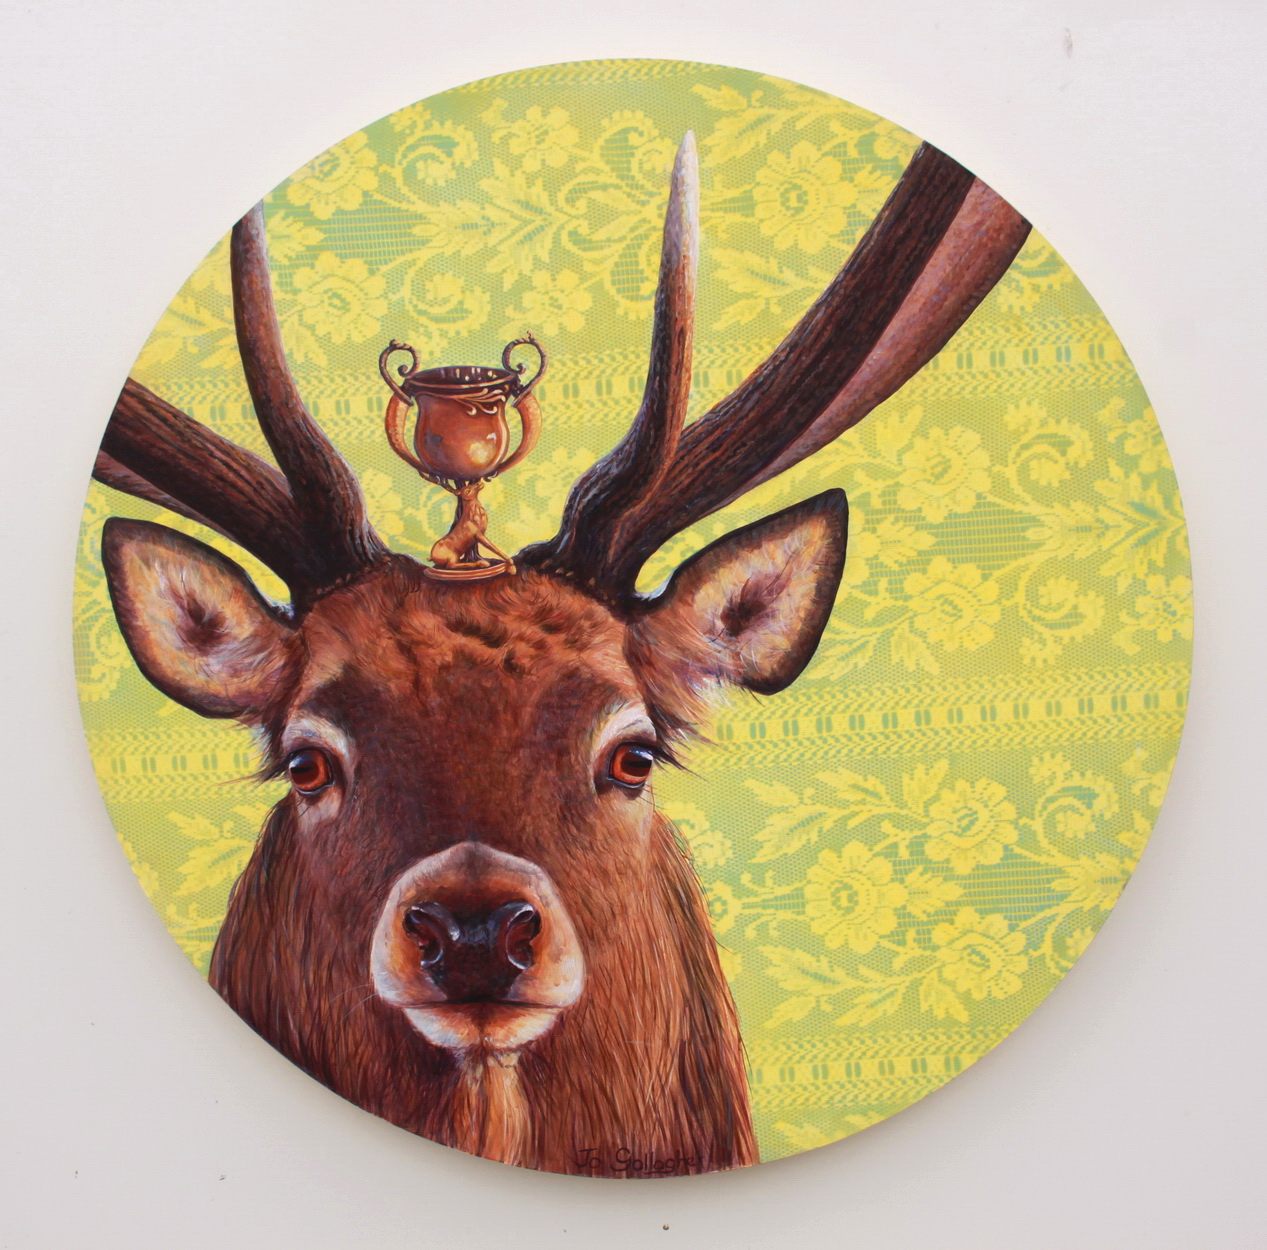 The Trophy Stag 800mm acrylic on plywood board $1750.00  SOLD